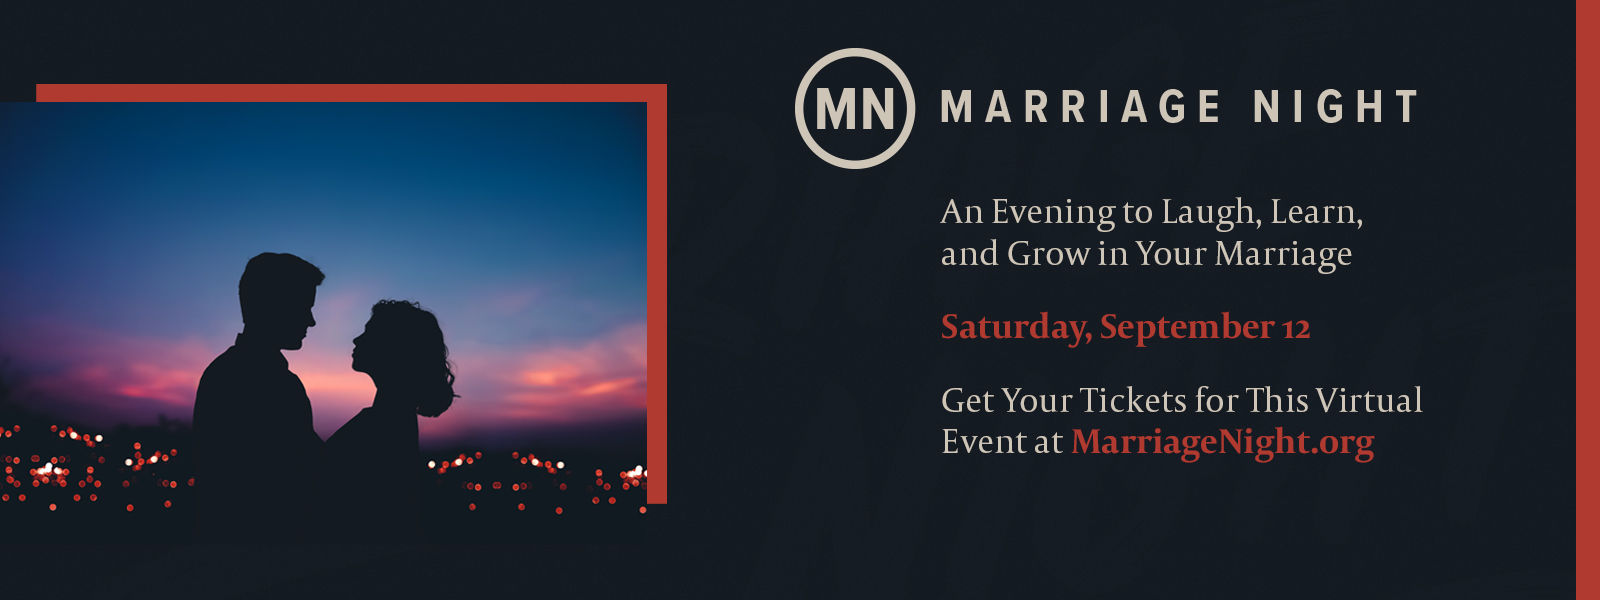 Marriage Night 2020 Event